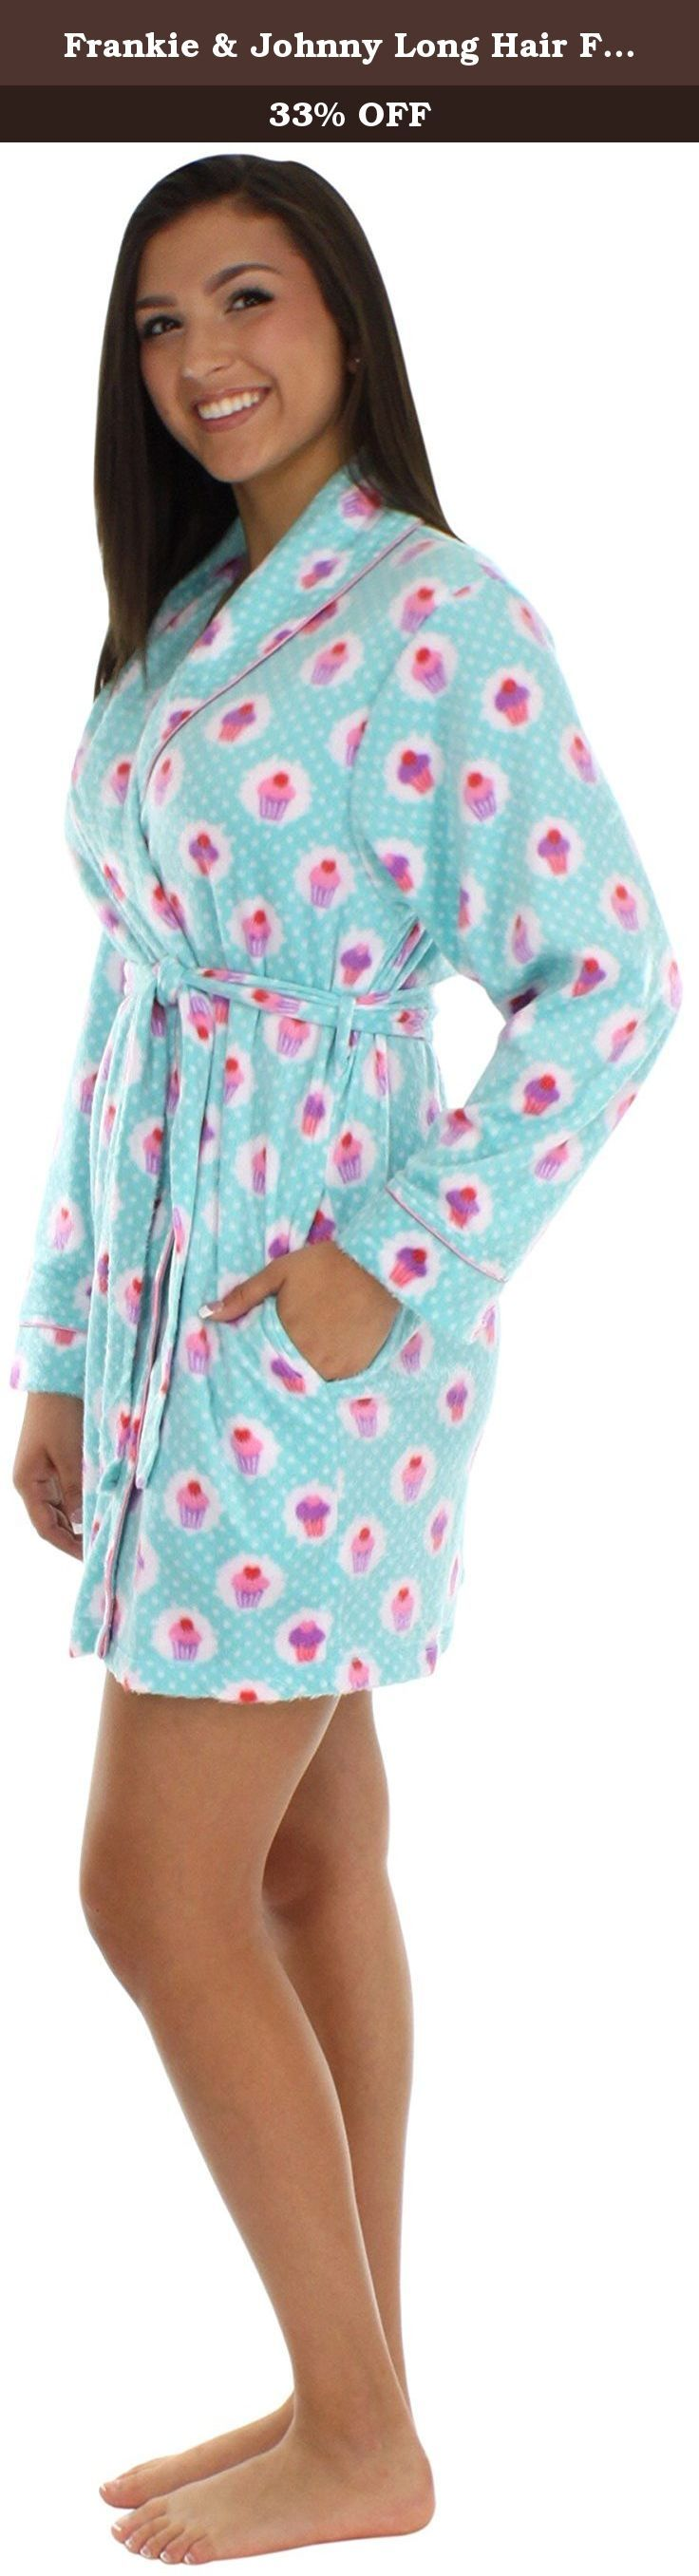 """Frankie & Johnny Long Hair Fleece 36"""" Short Robe Cupcakes Teal- M. Frankie & Johnny long hair fleece short robes have a minky feel and are super soft and comfortable with just enough stretch that you will want to wear them all day long. Sizing: XS (0-2), S (4-6), M (8-10), L (12-14), XL (16-18)."""